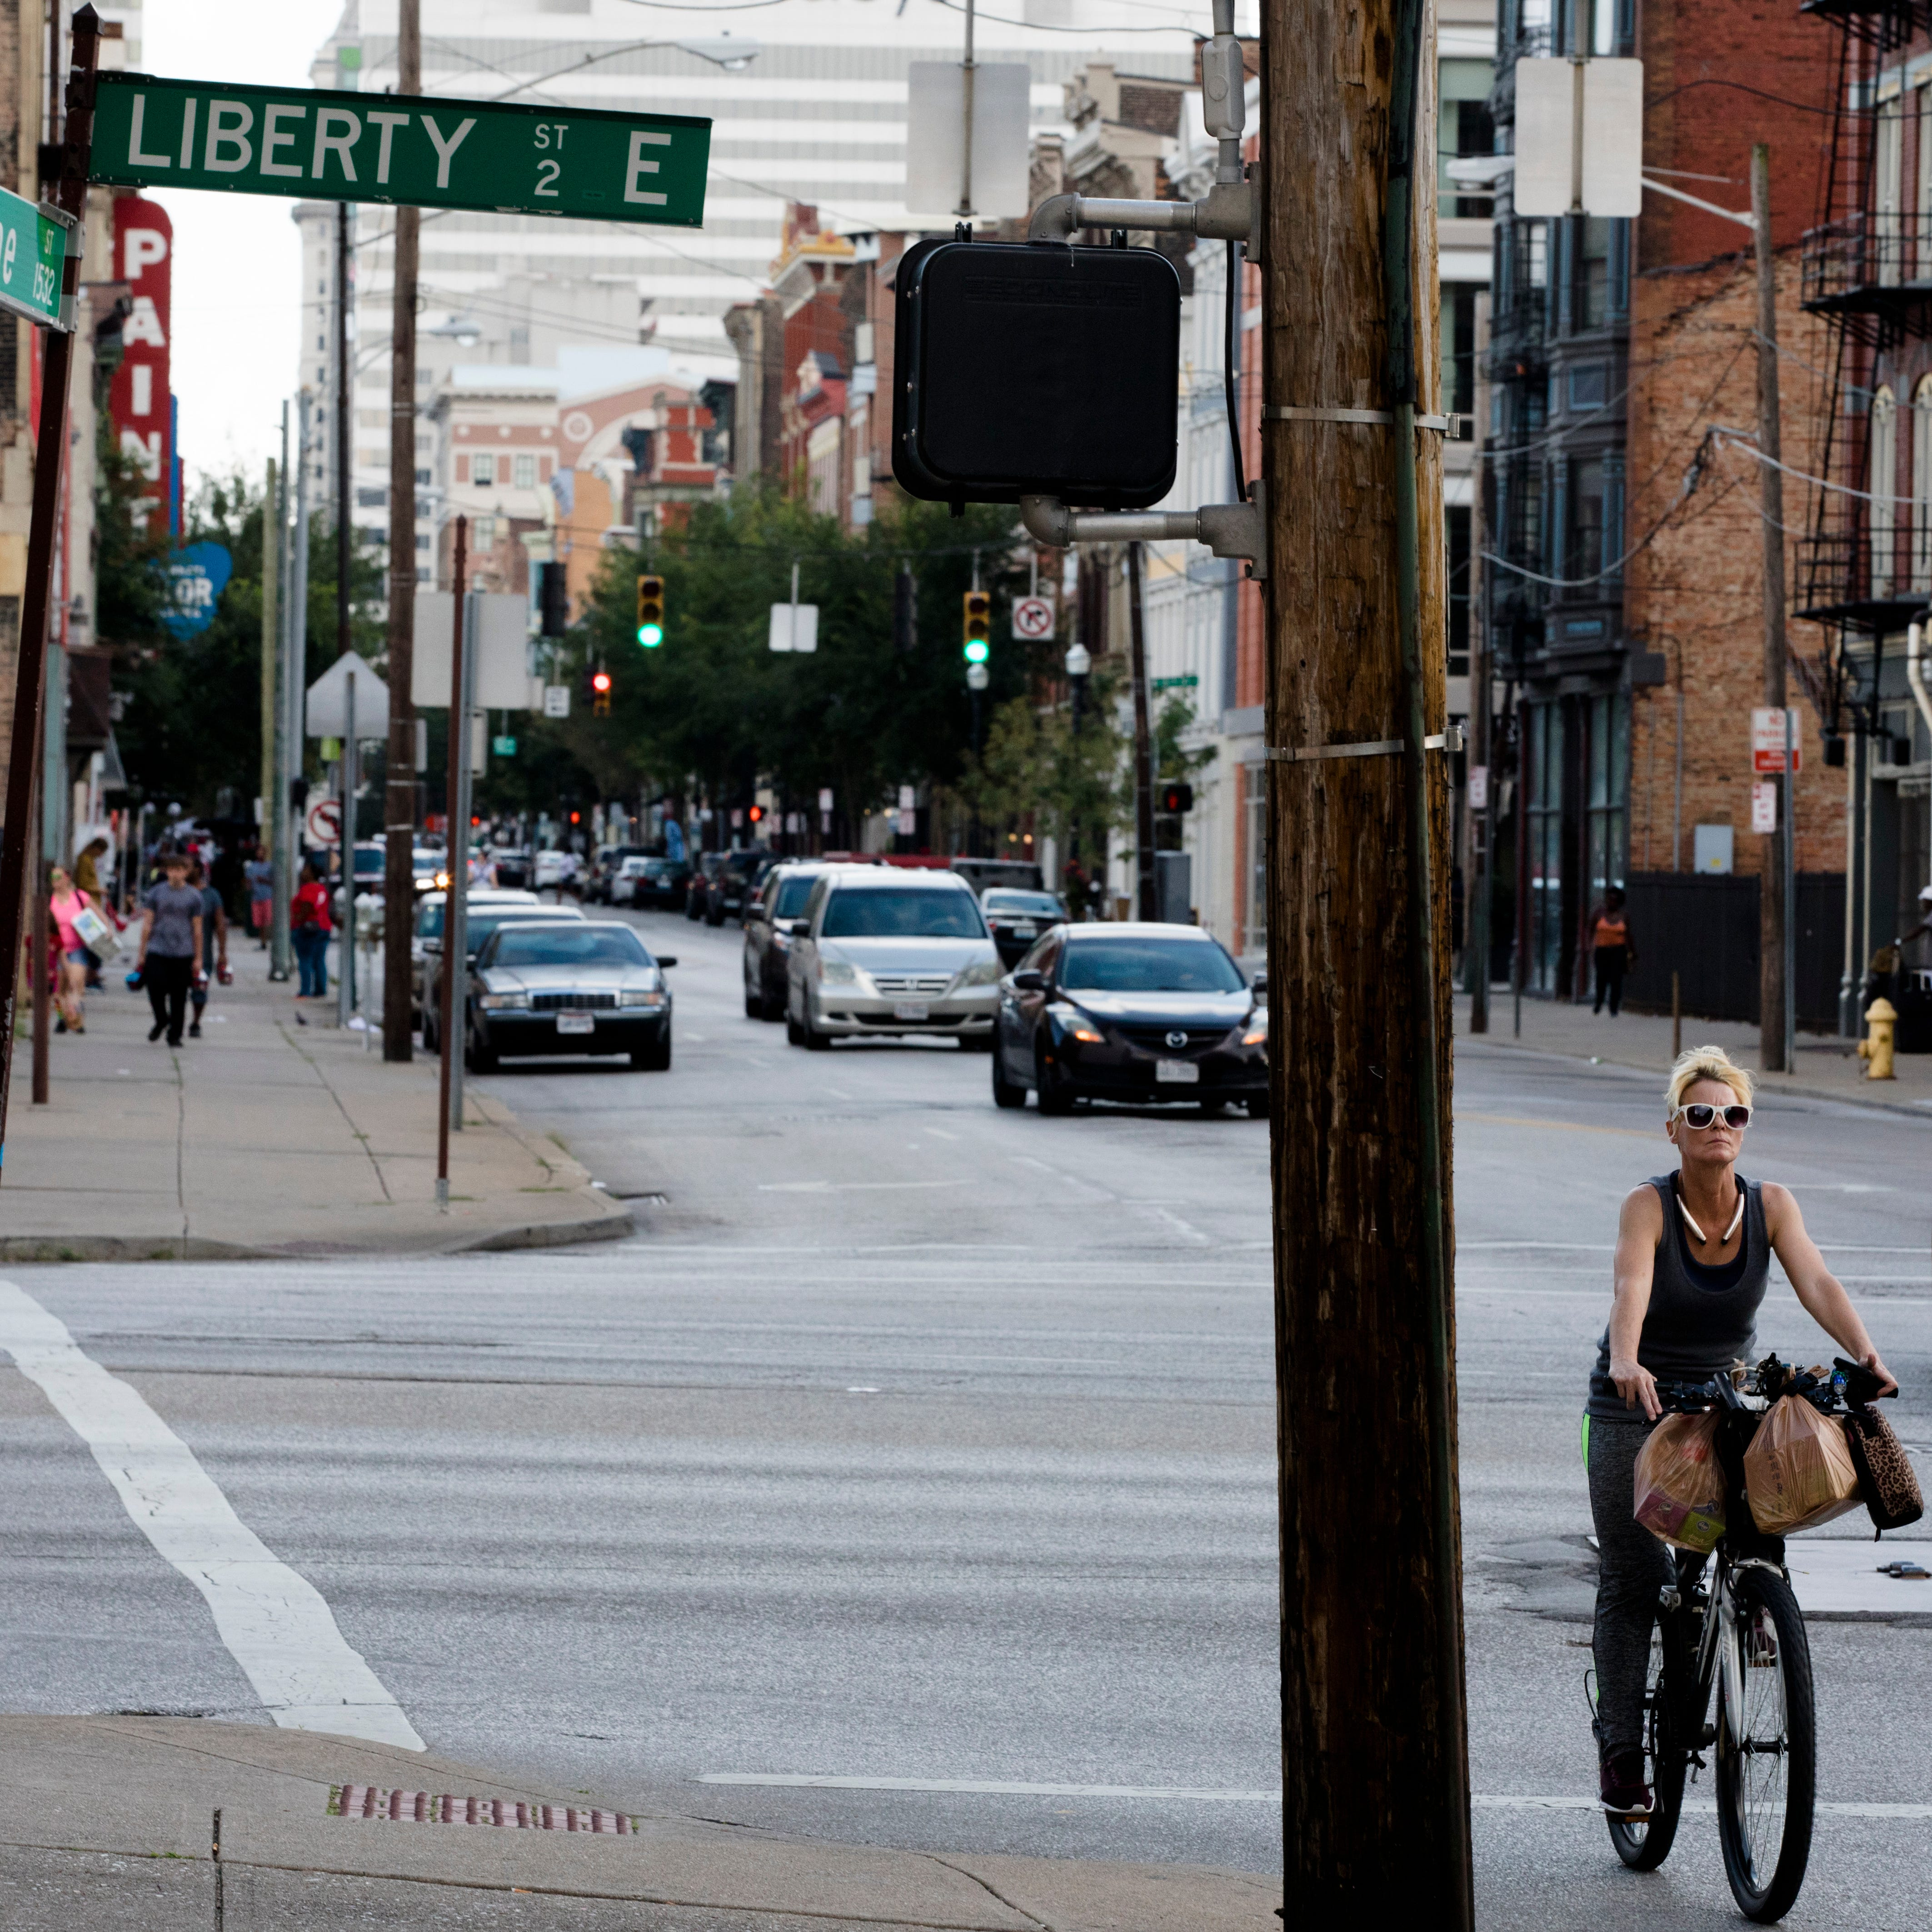 Opinion: Making a Liberty Street that works for everyone